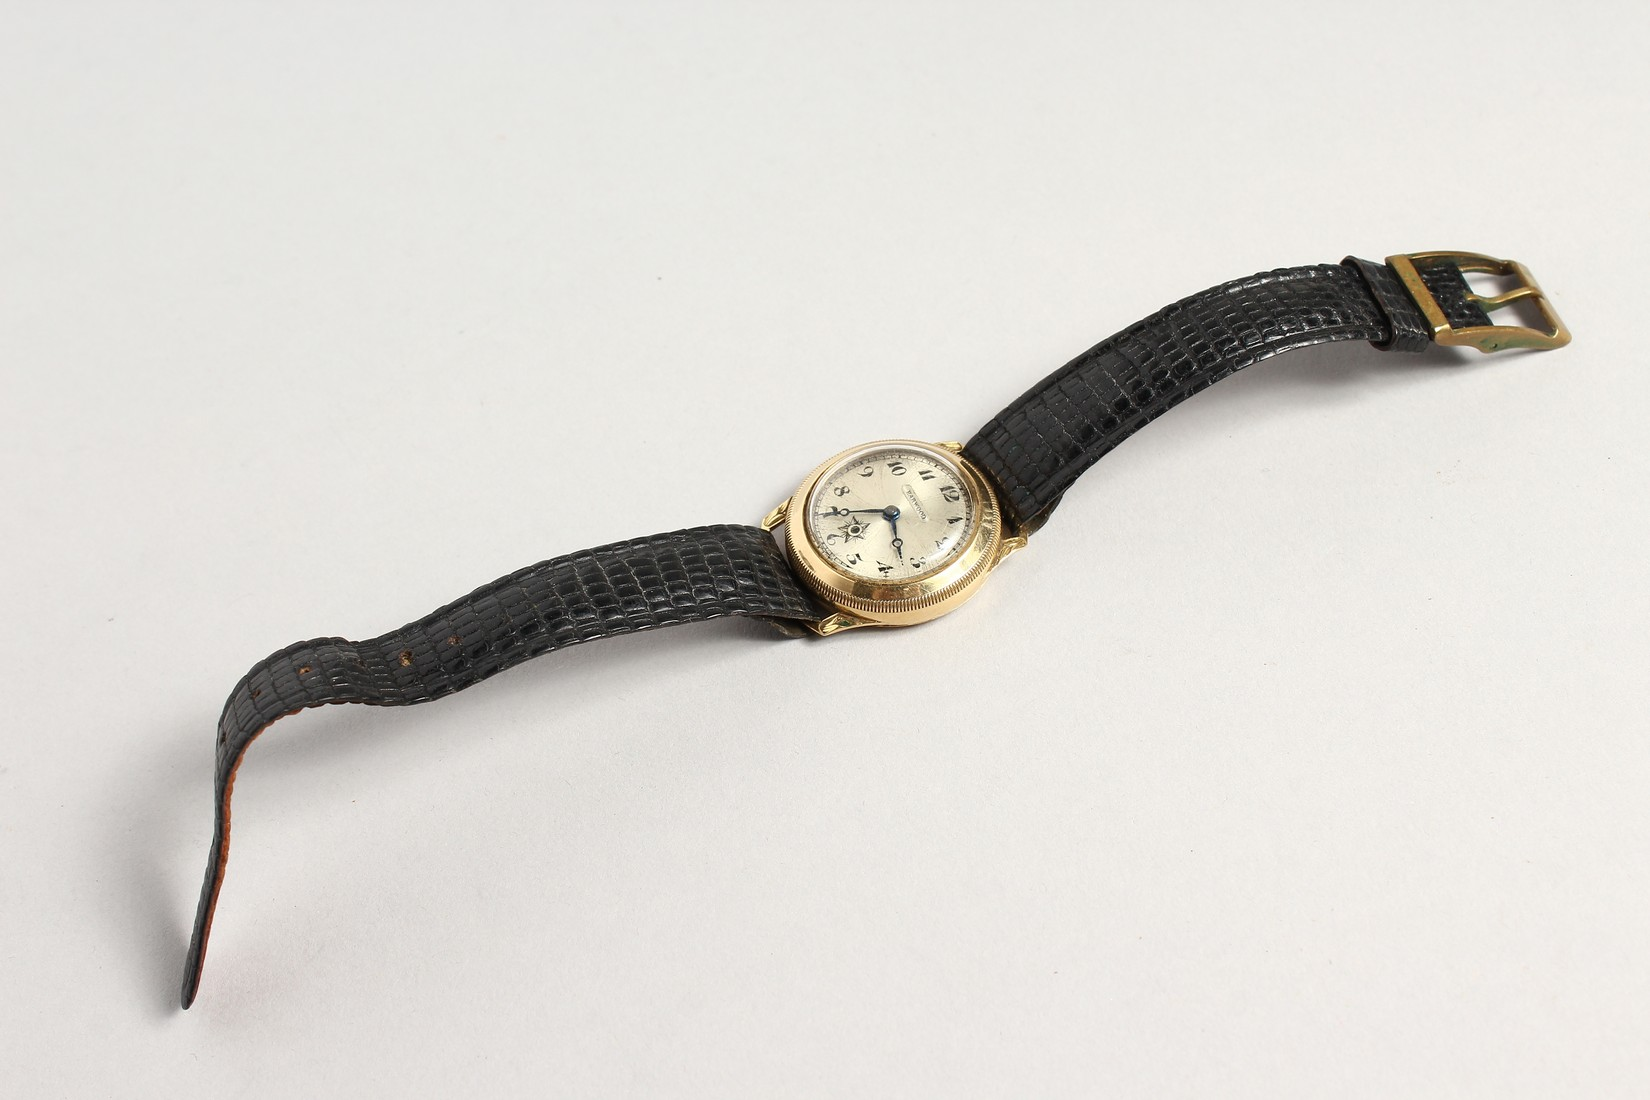 A HARWOOD GOLD WRISTWATCH with leather strap. - Image 2 of 3